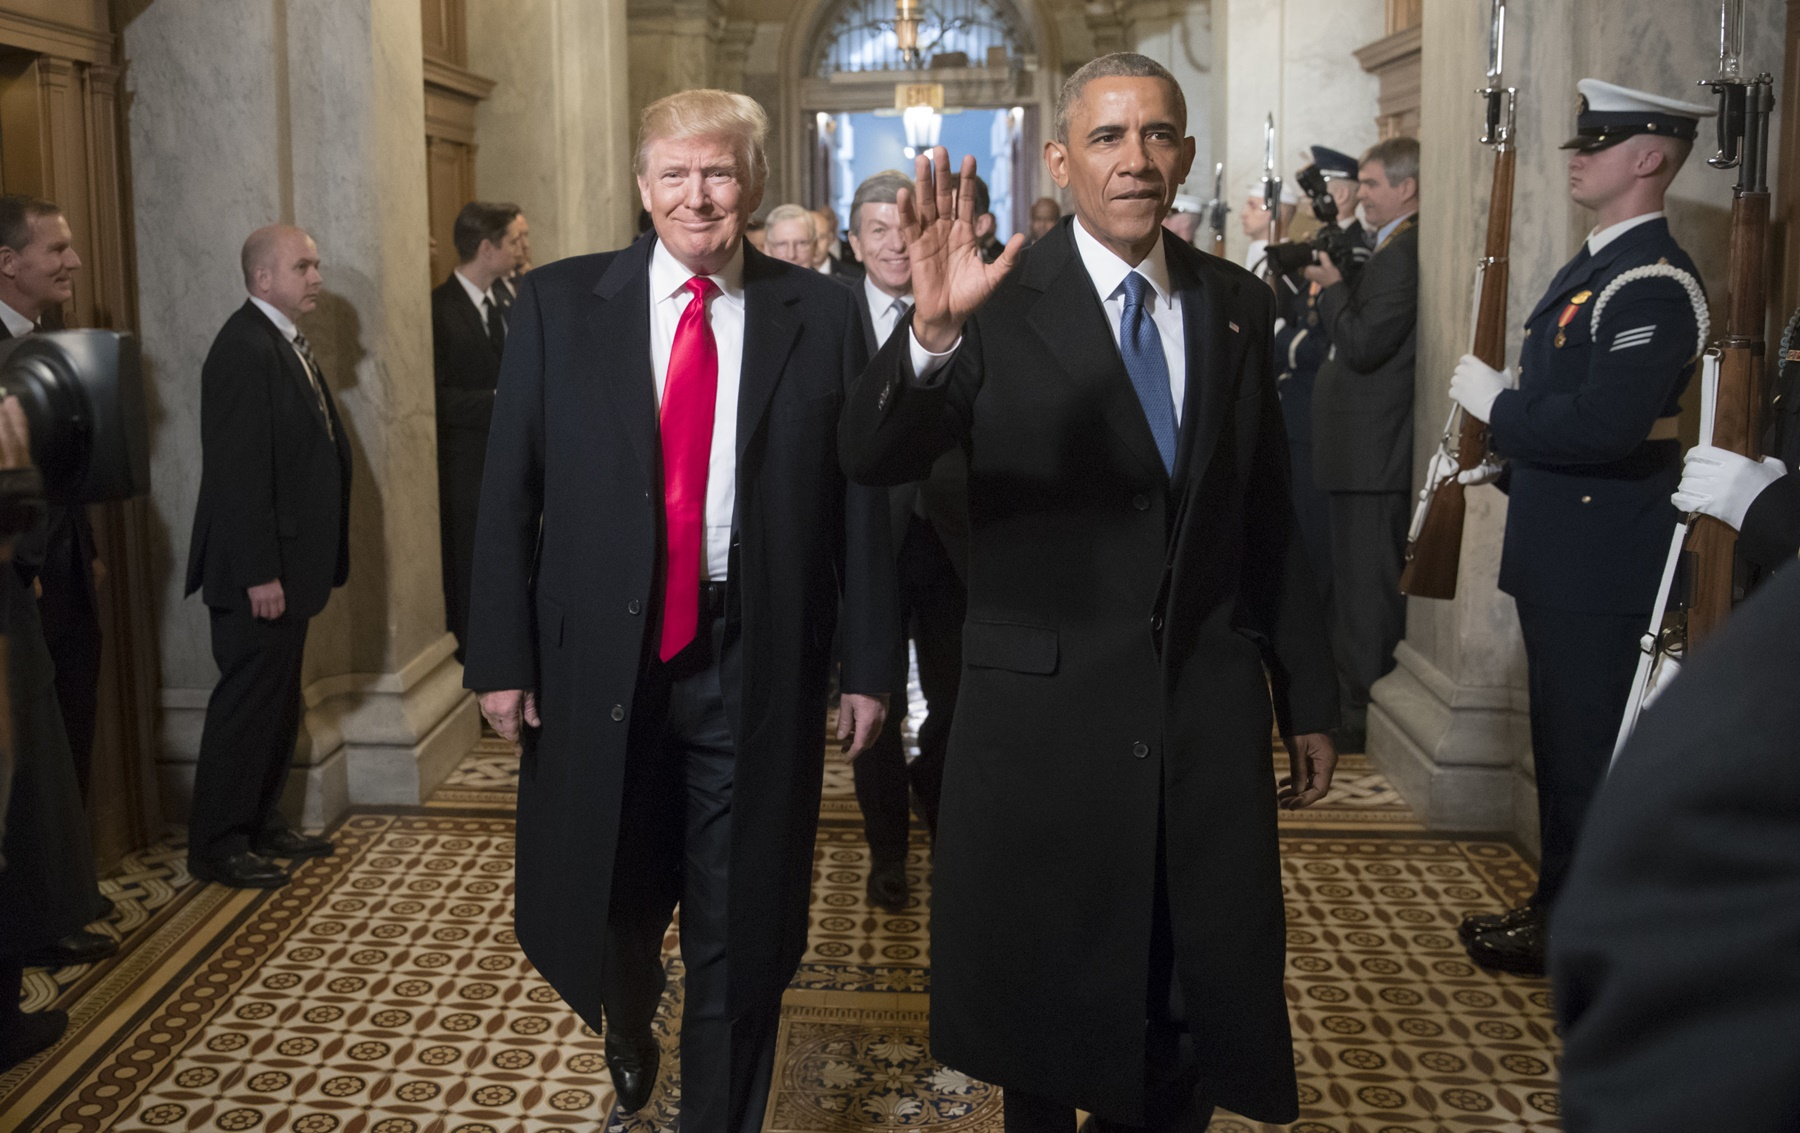 Donald Trump,Barack Obama